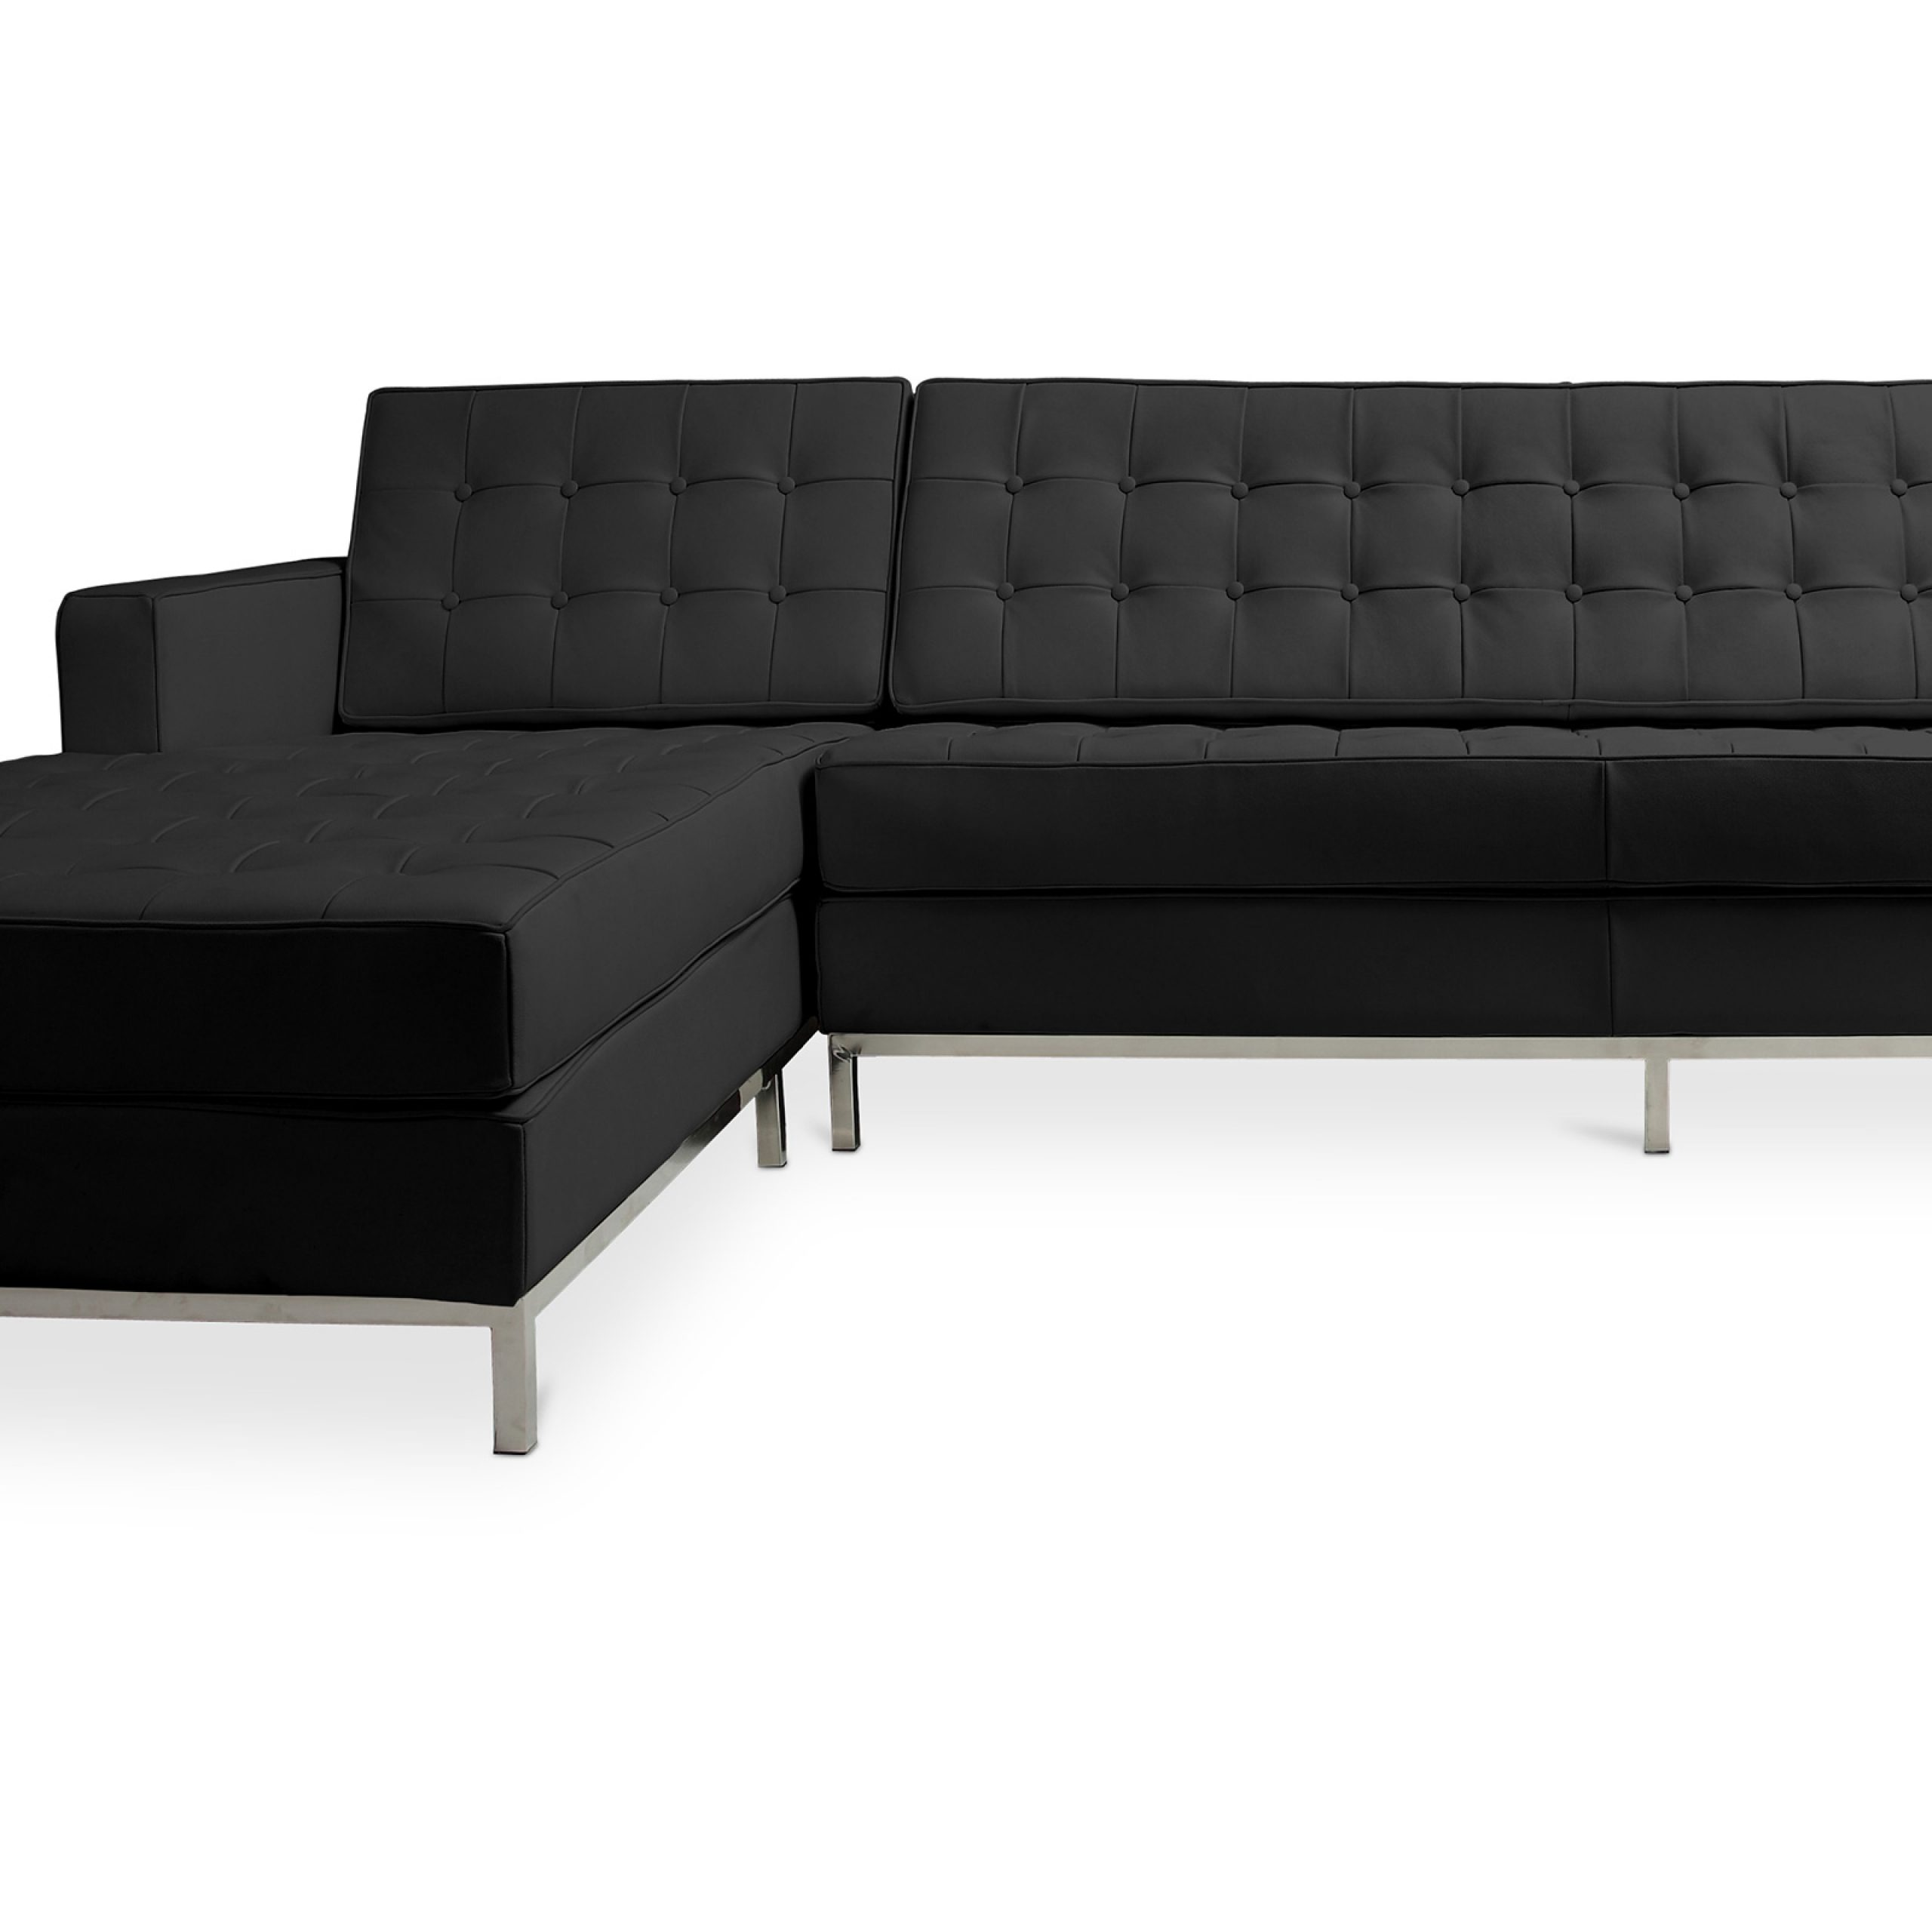 Buy Design Corner Sofa Florence Knoll Style – Left Angle With Regard To Florence Sofas And Loveseats (View 5 of 15)